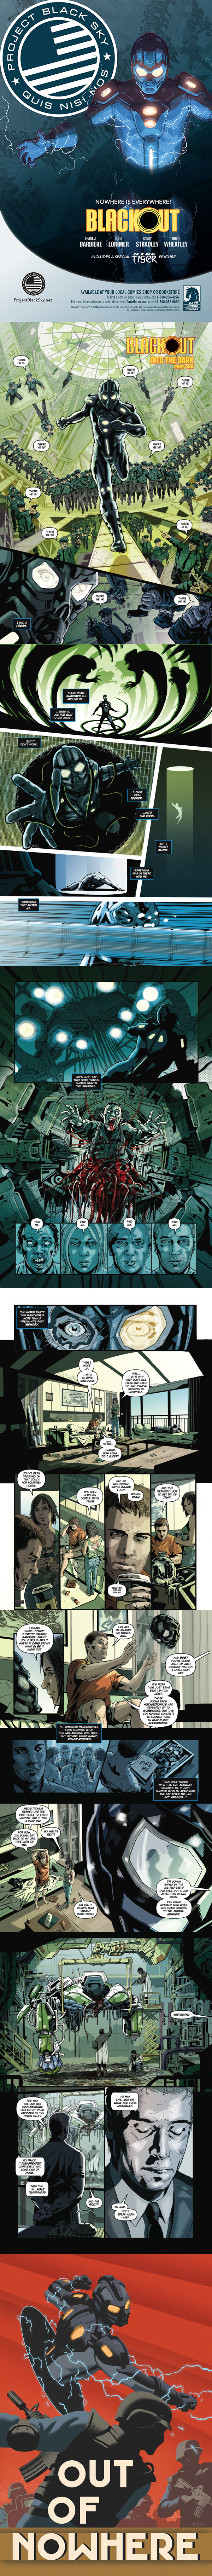 Blackout #1 Preview Pages Dark Horse Comics